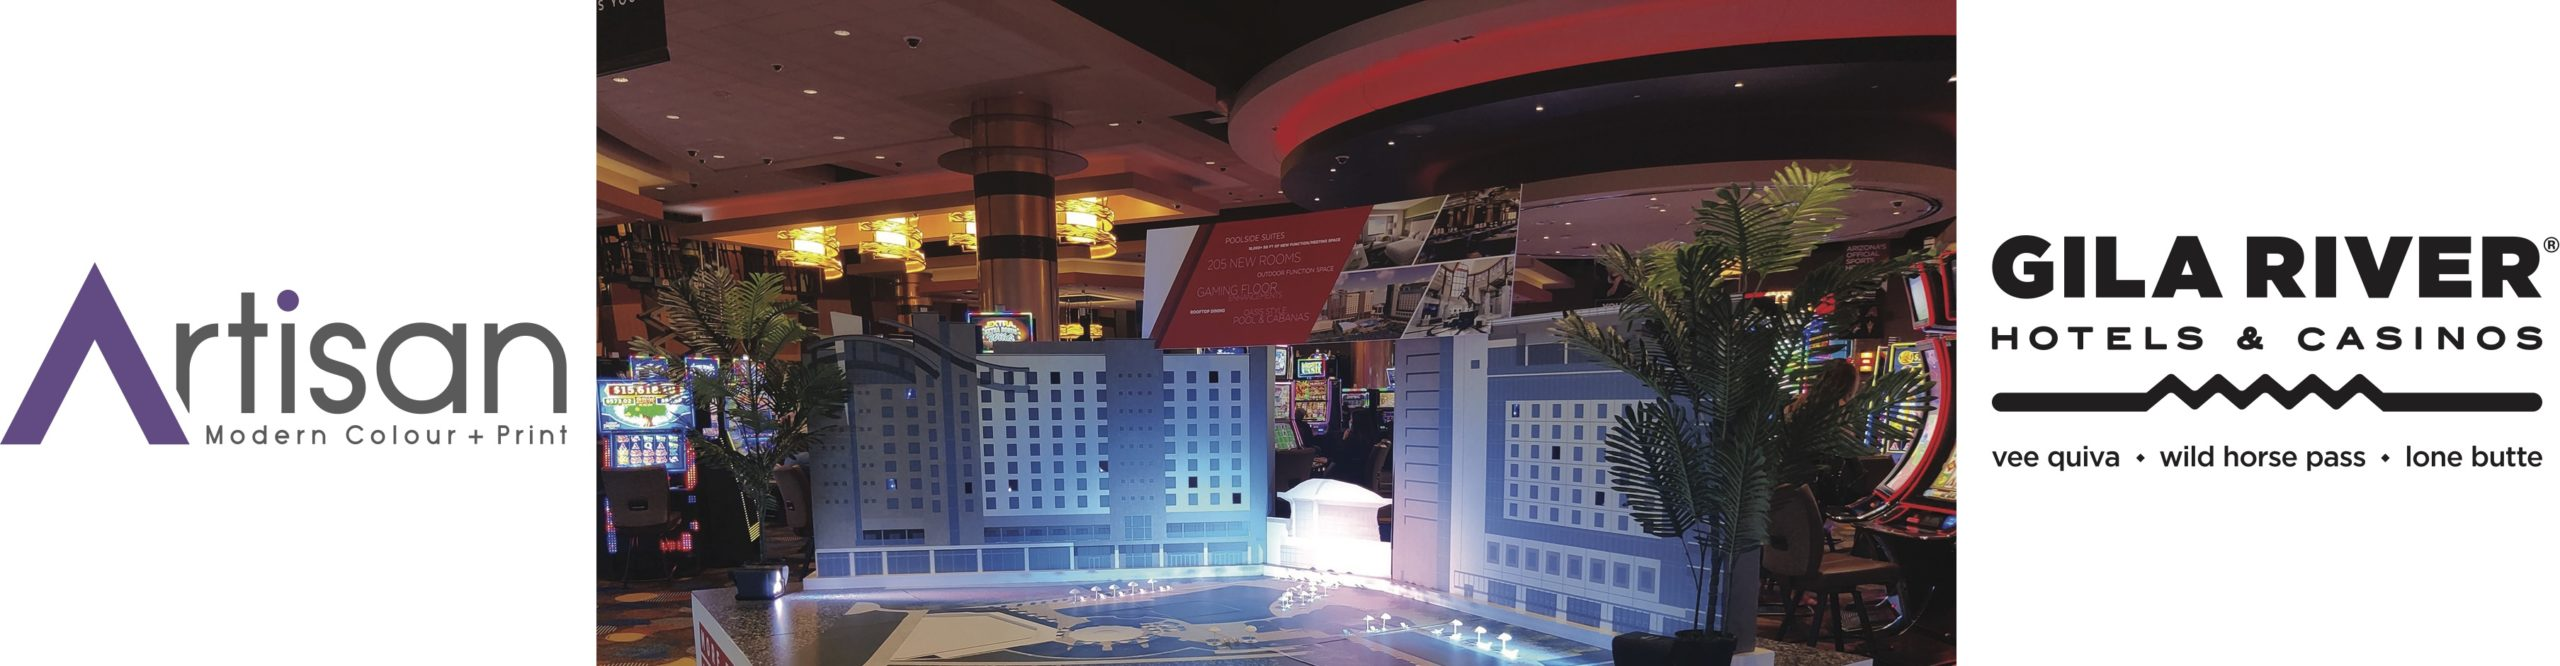 Architectural Rendering Services for Gila Wild Horses by Artisan Colour